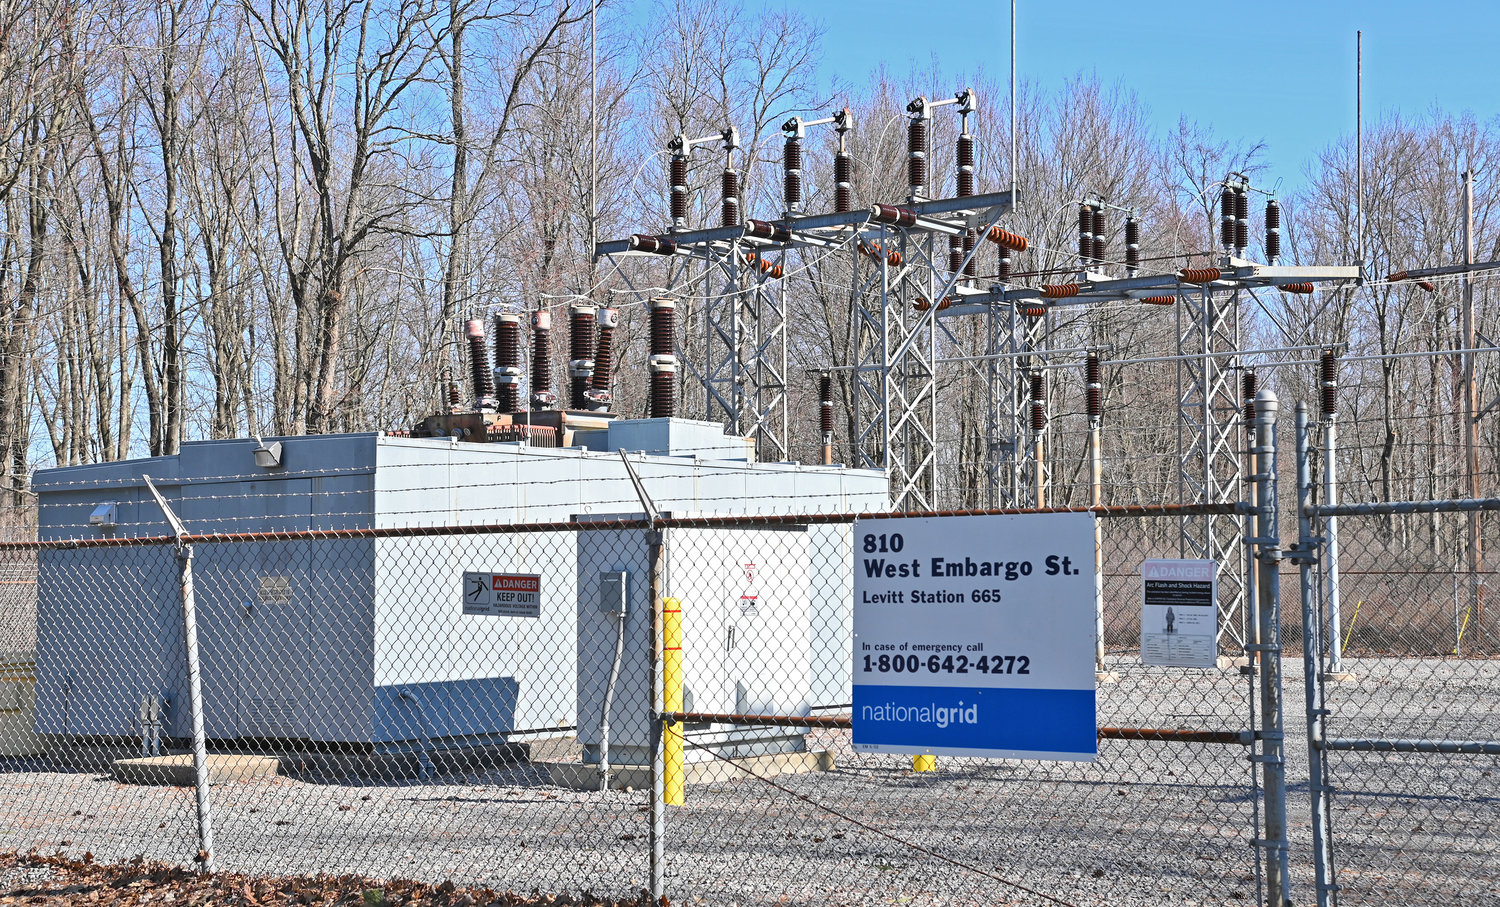 POWER TO THE PEOPLE — The National Grid power station on West Embargo Street, near the intersection with North Levitt Street, is getting an upgrade. While the work is in progress, the utility will use a massive generator to keep electricity flowing to the impacted areas.